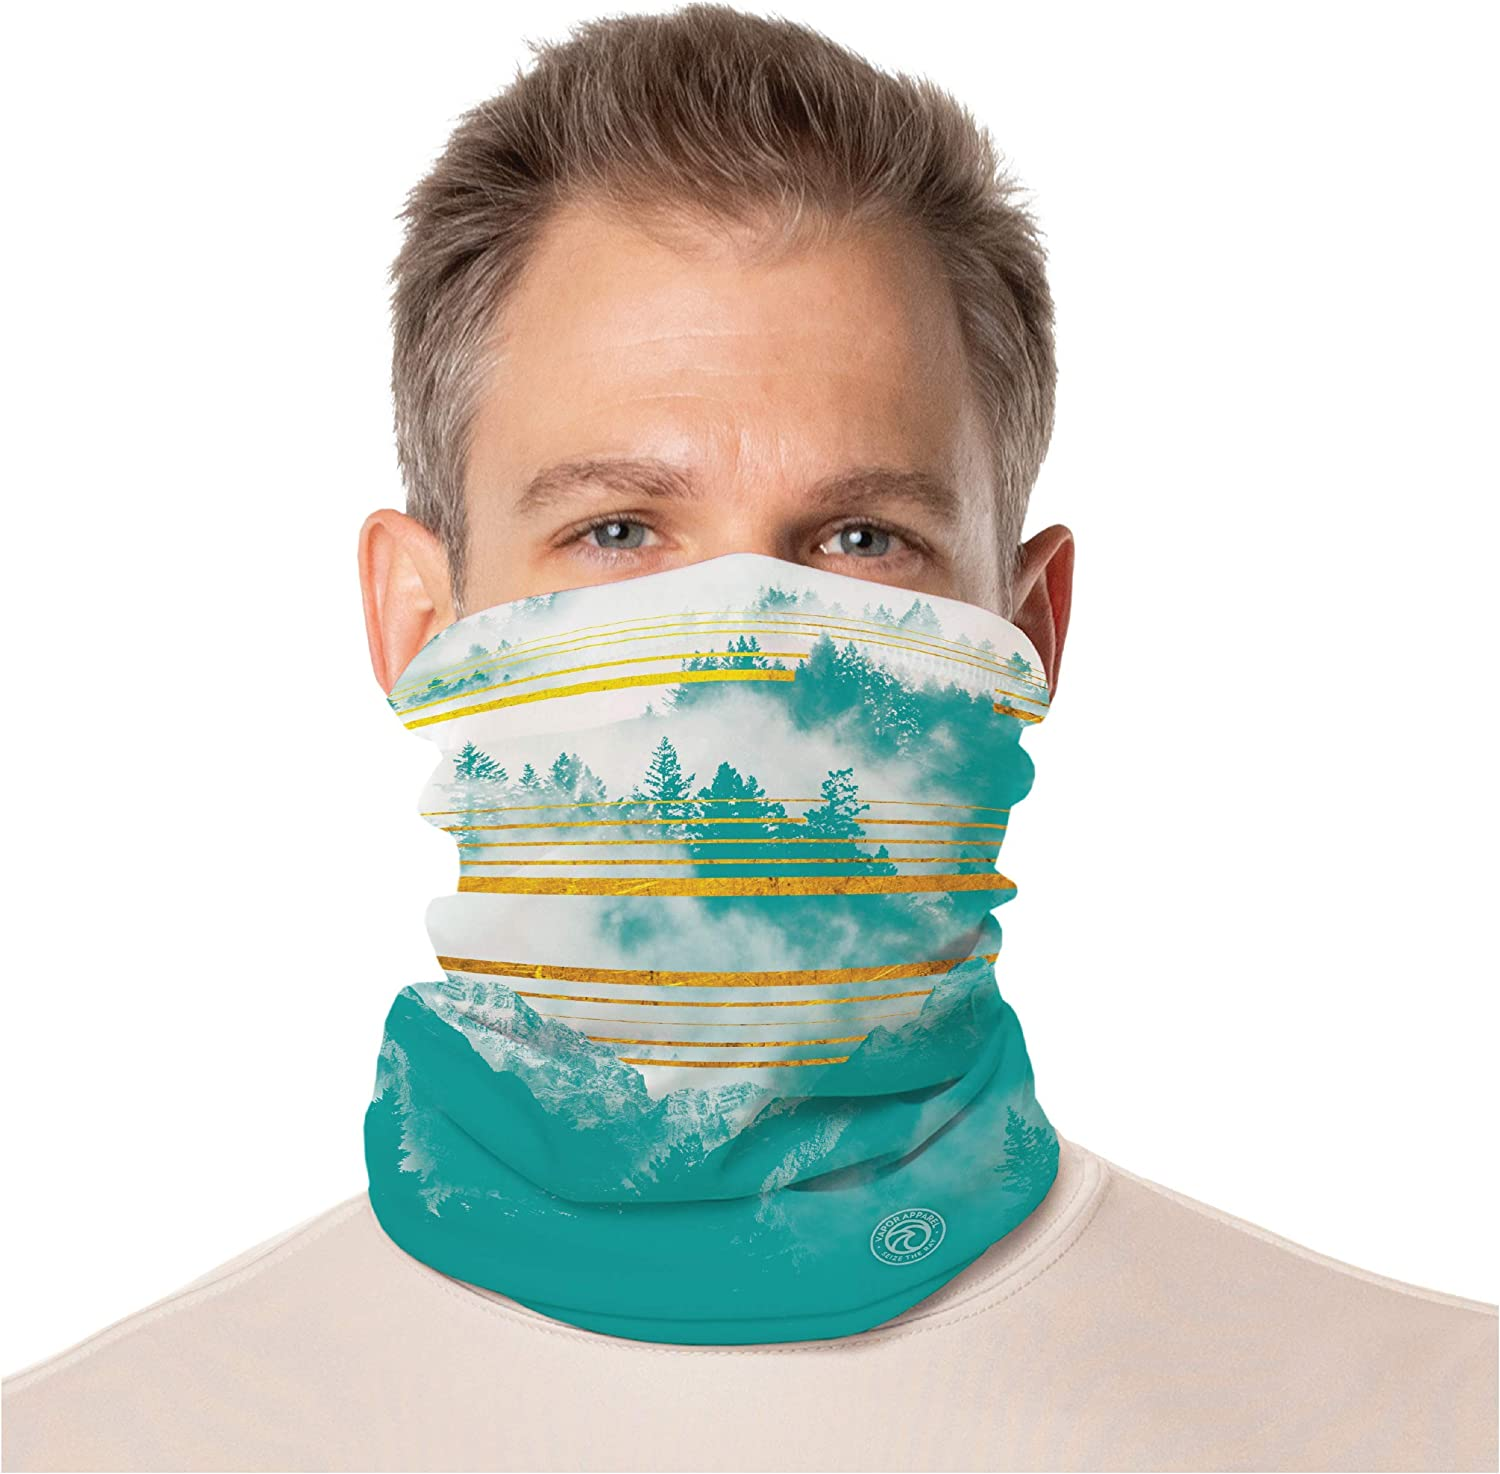 Vapor Apparel Lightweight Fleece Gaiter, Multi Use Face Cover with UPF 50+ UV Protection for Men and Women